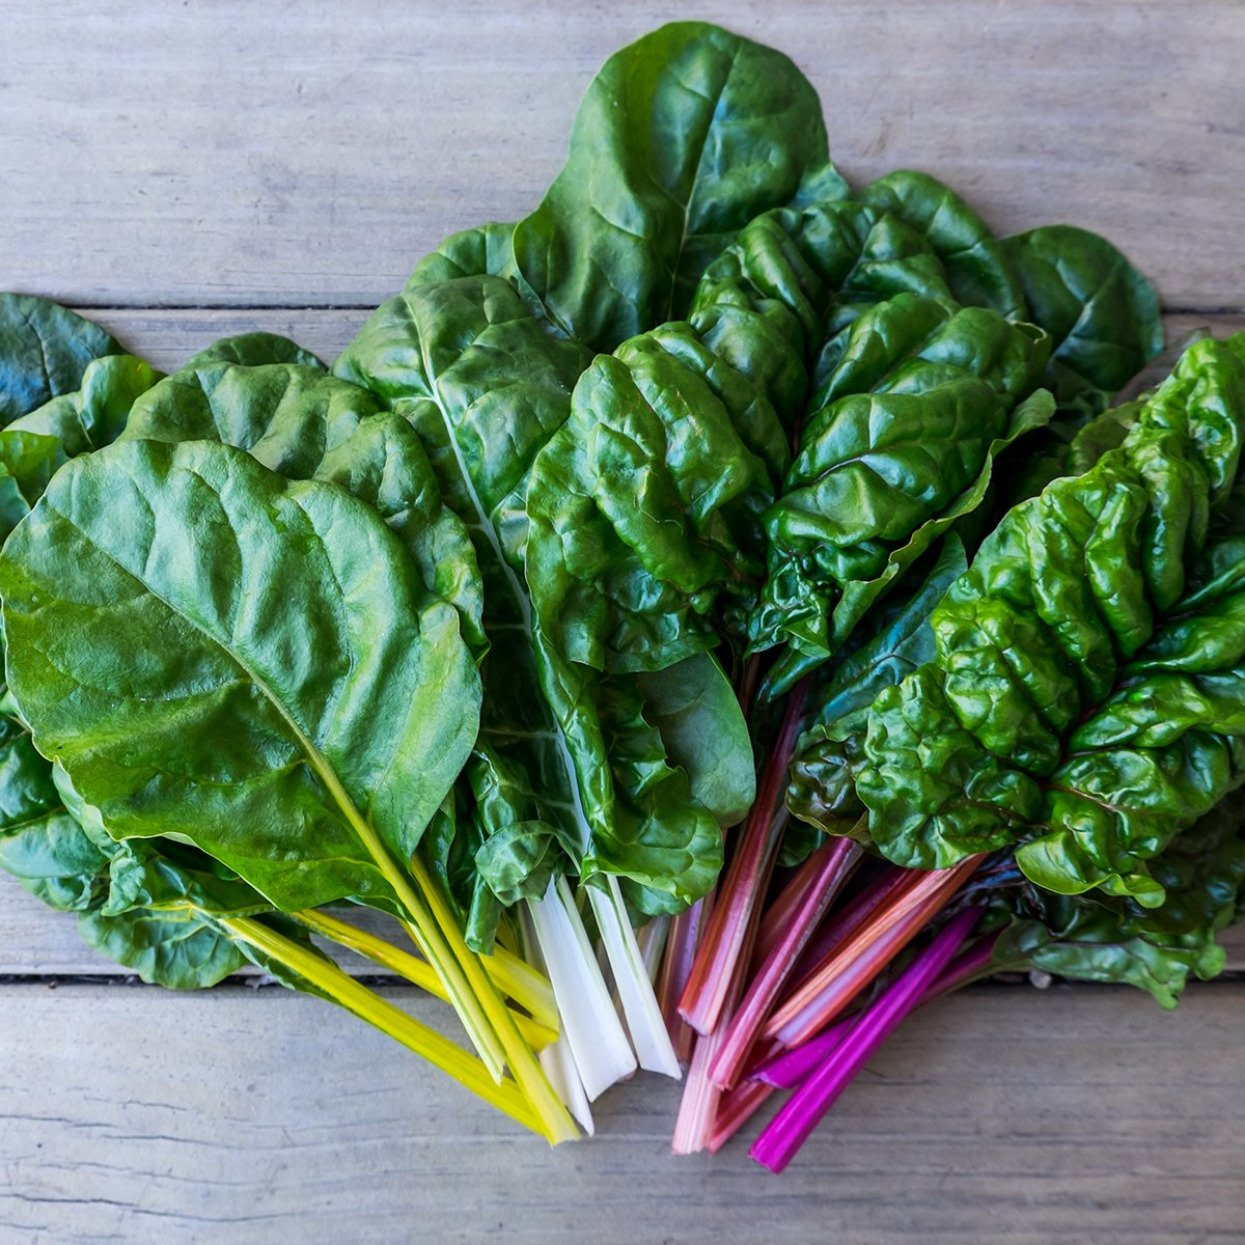 green vegetables for anti-aging